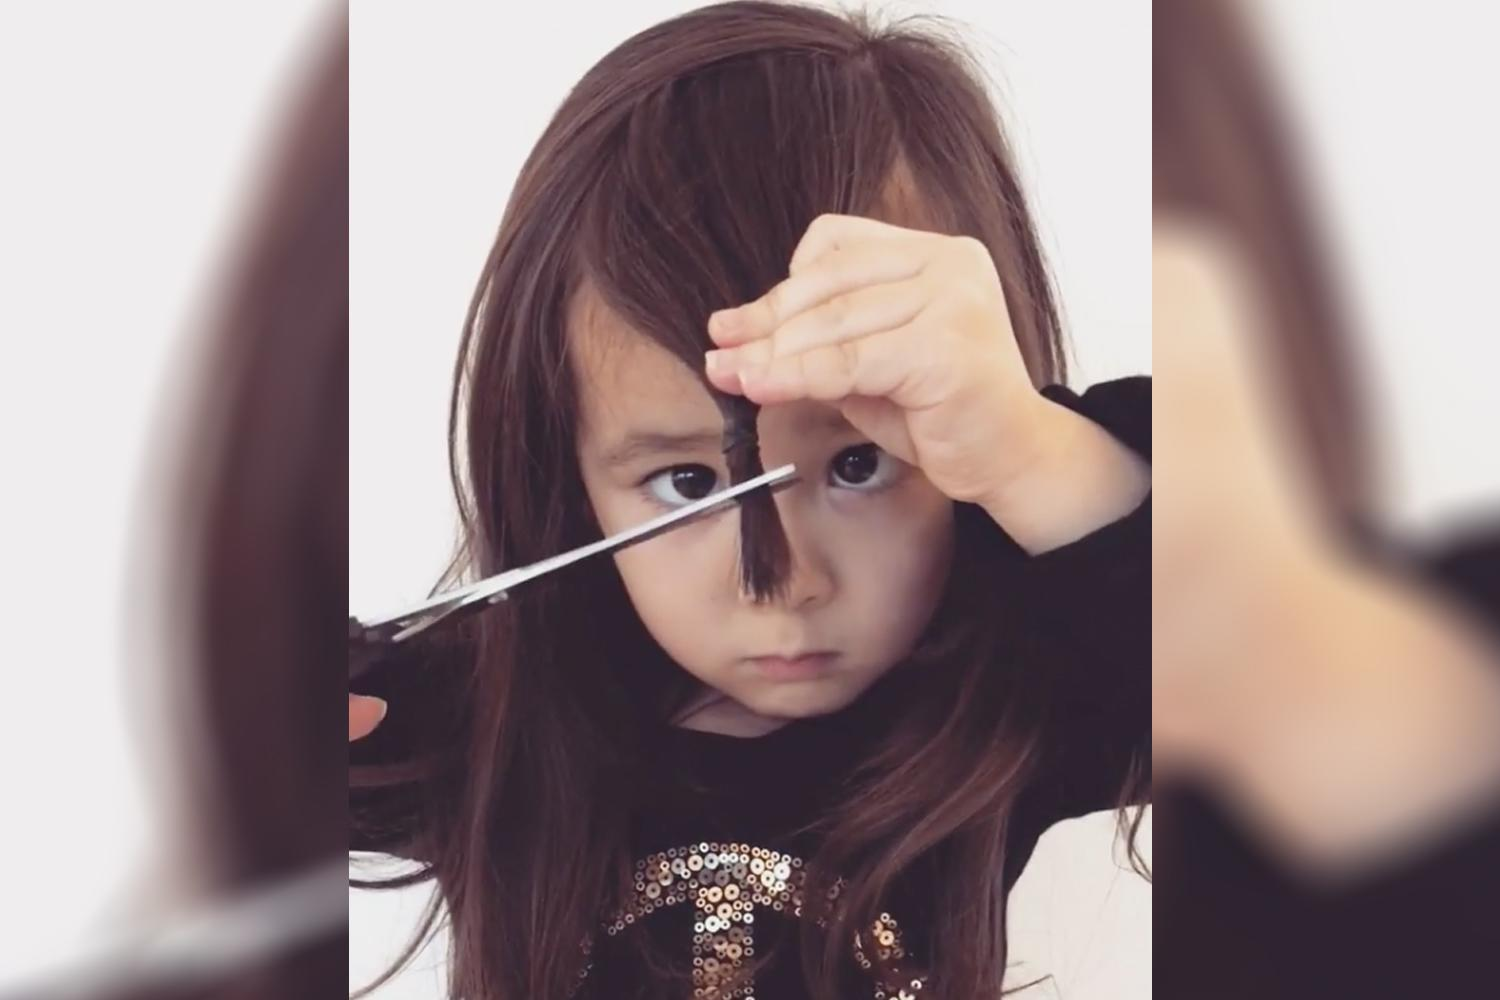 This video of a 4 year old girl cutting her own bangs will make you cringe